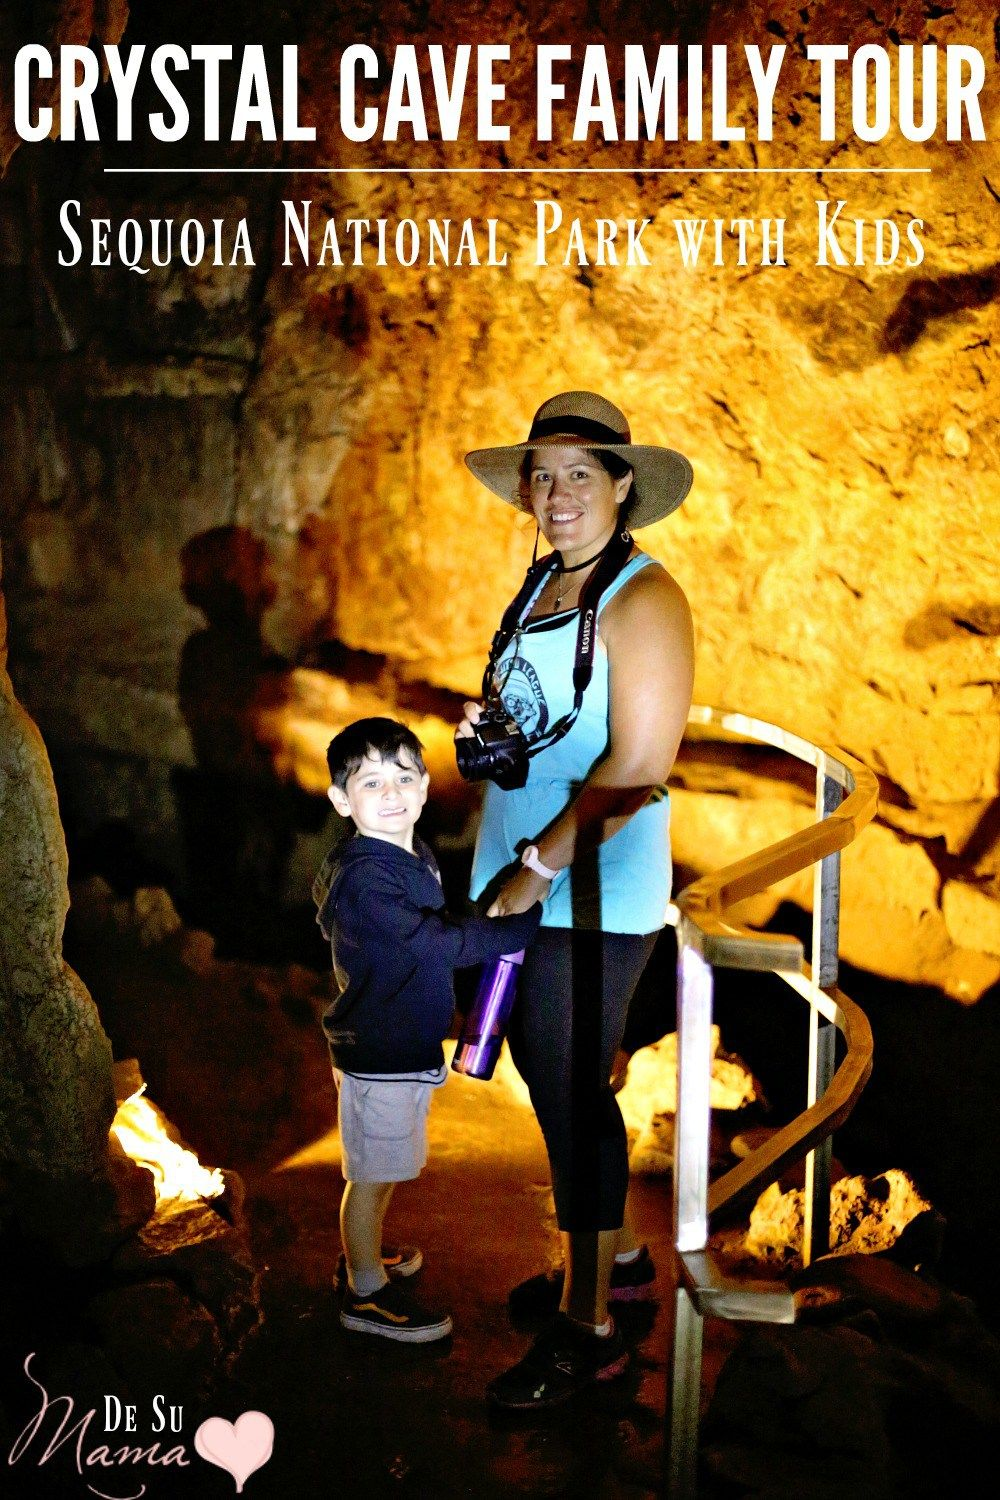 Crystal Cave at Sequoia National Park with Kids